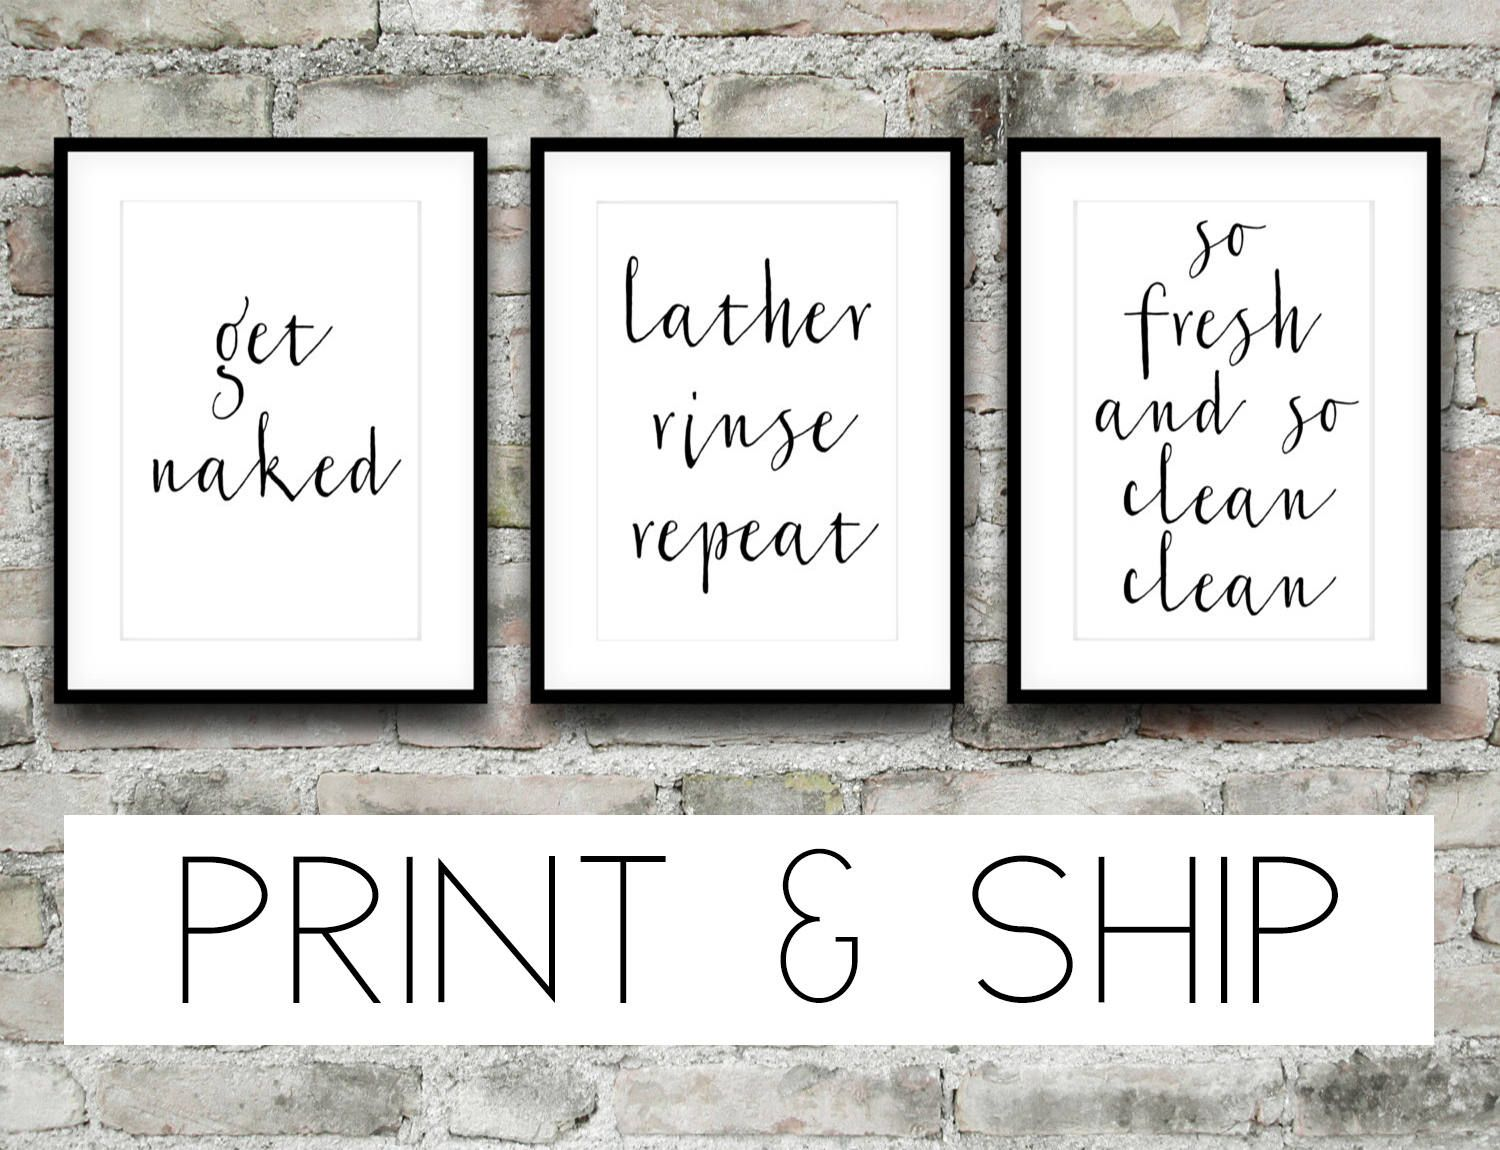 Clean A Bathroom Set bathroom prints, get naked, lather rinse repeat, so fresh and so